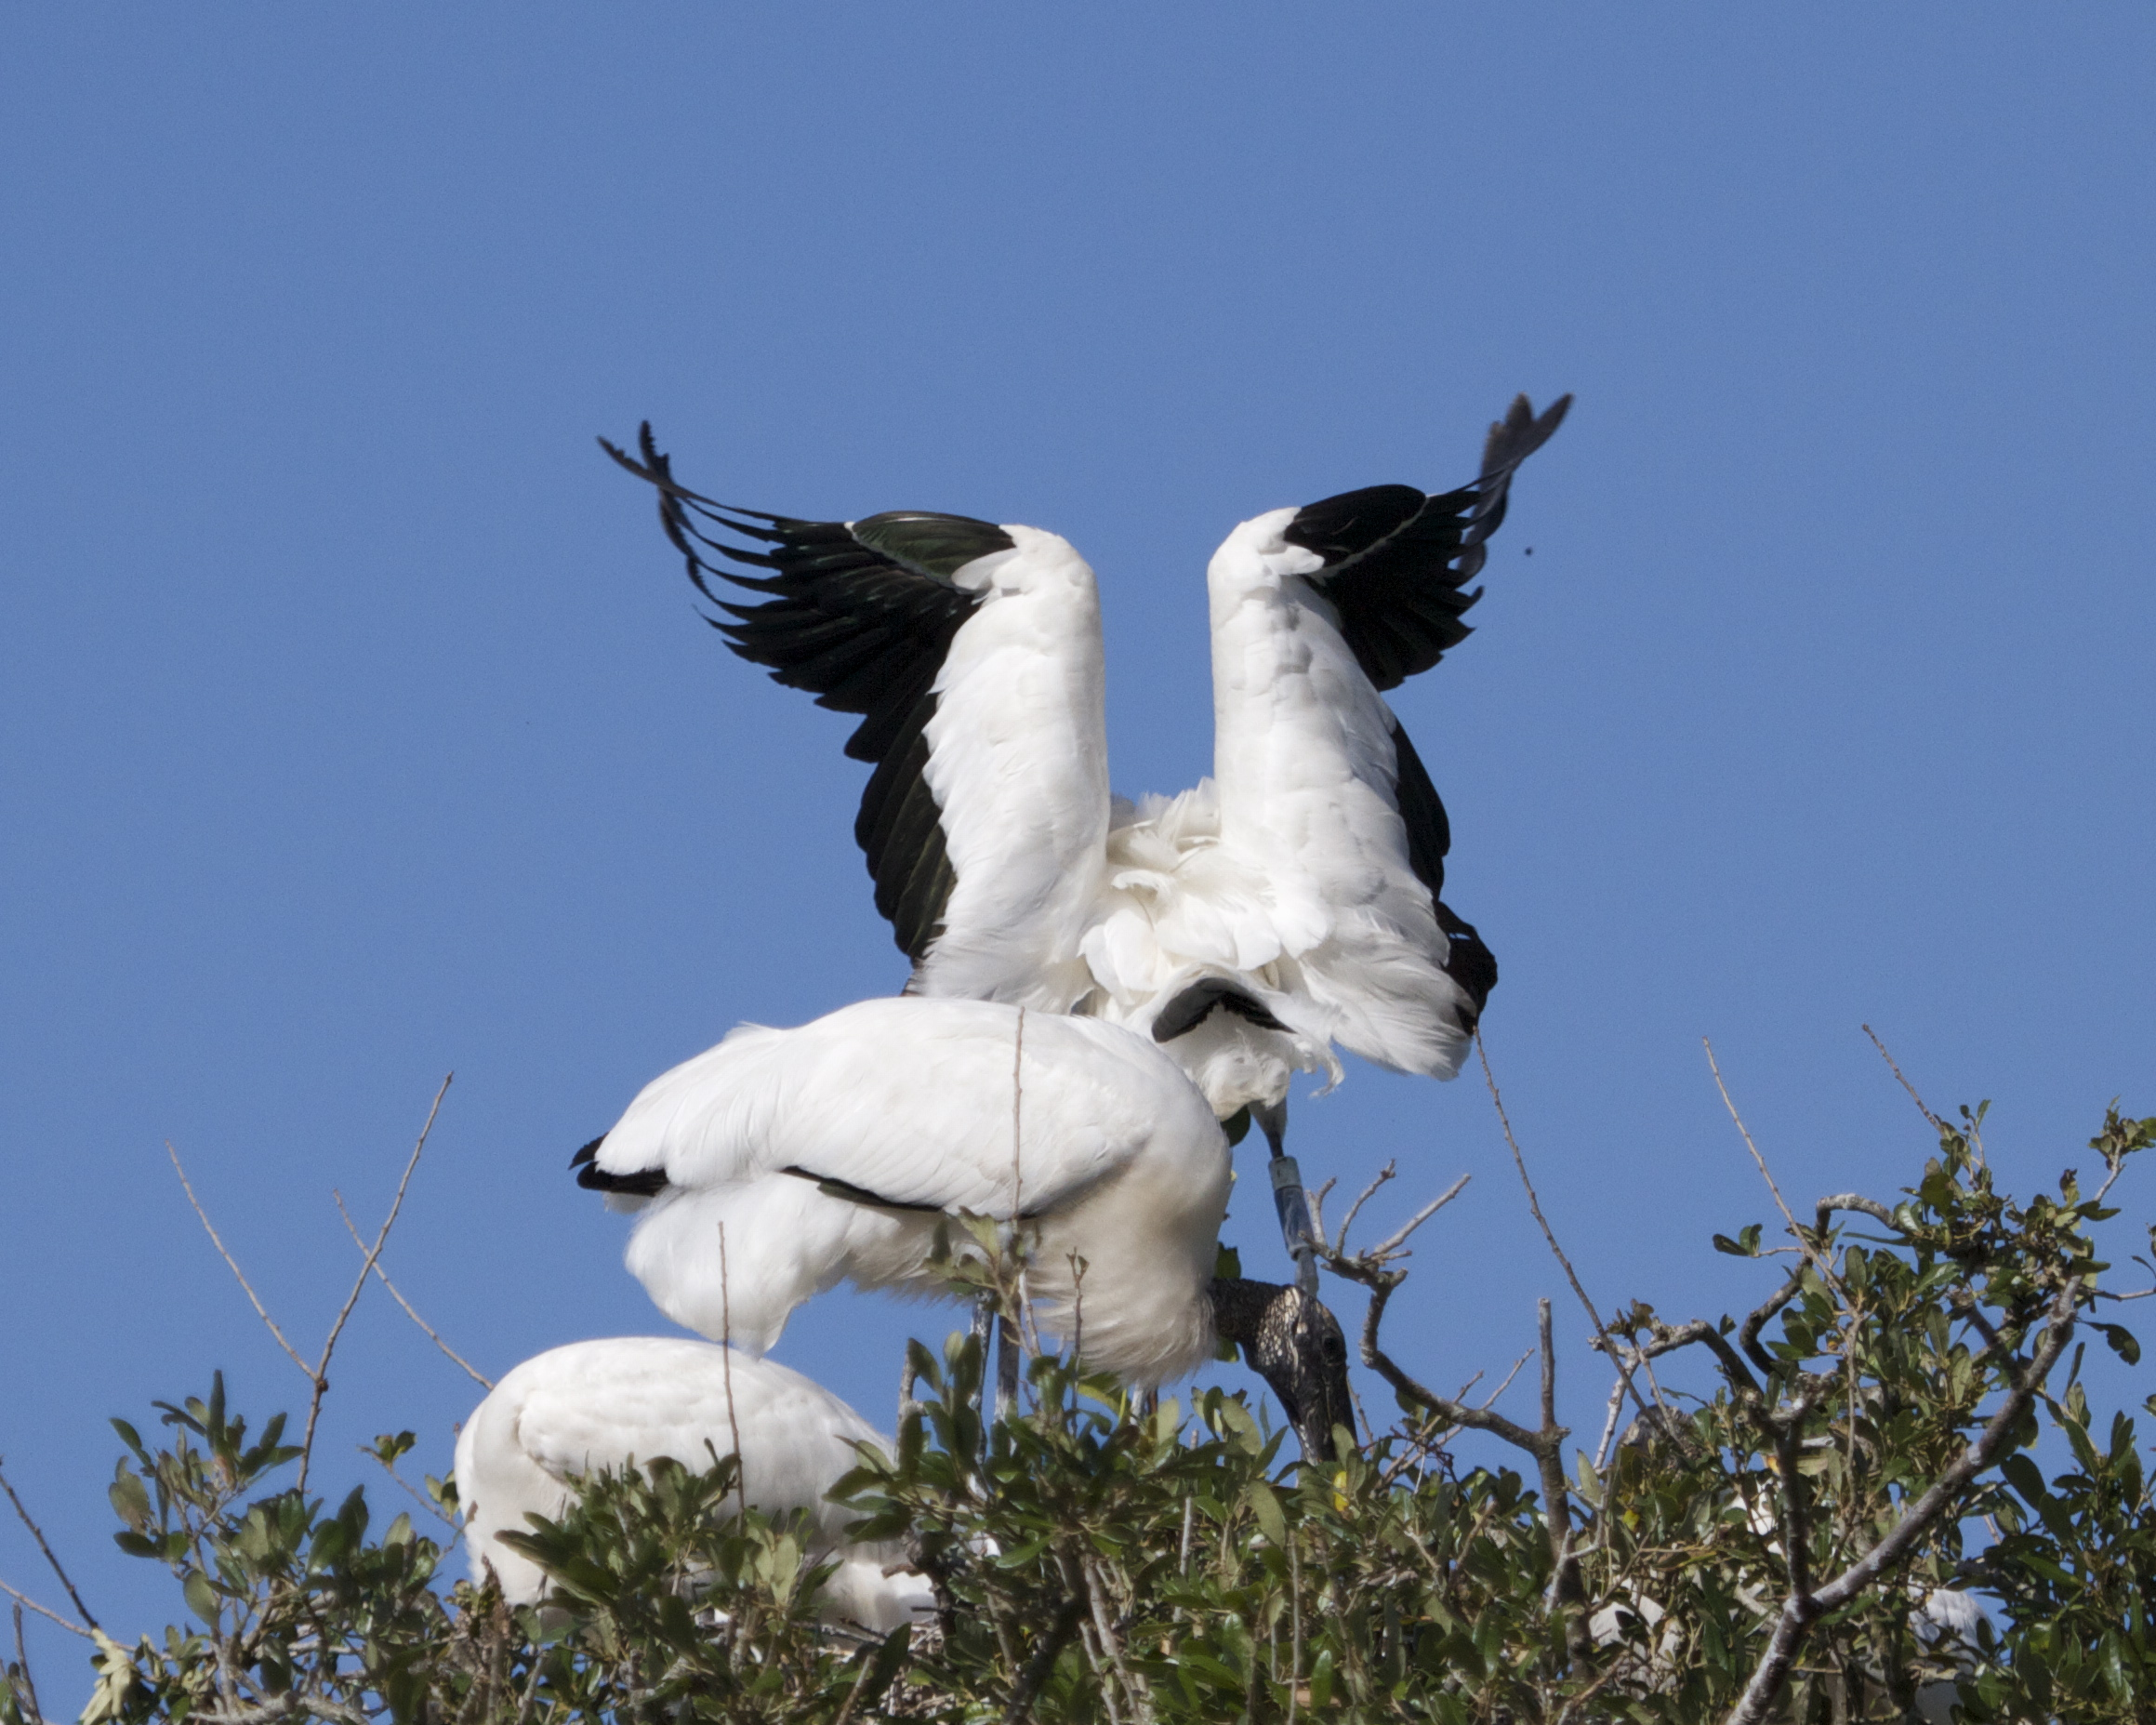 And touchdown…! Another fine flight by Wood Stork airlines..We deliver on time.